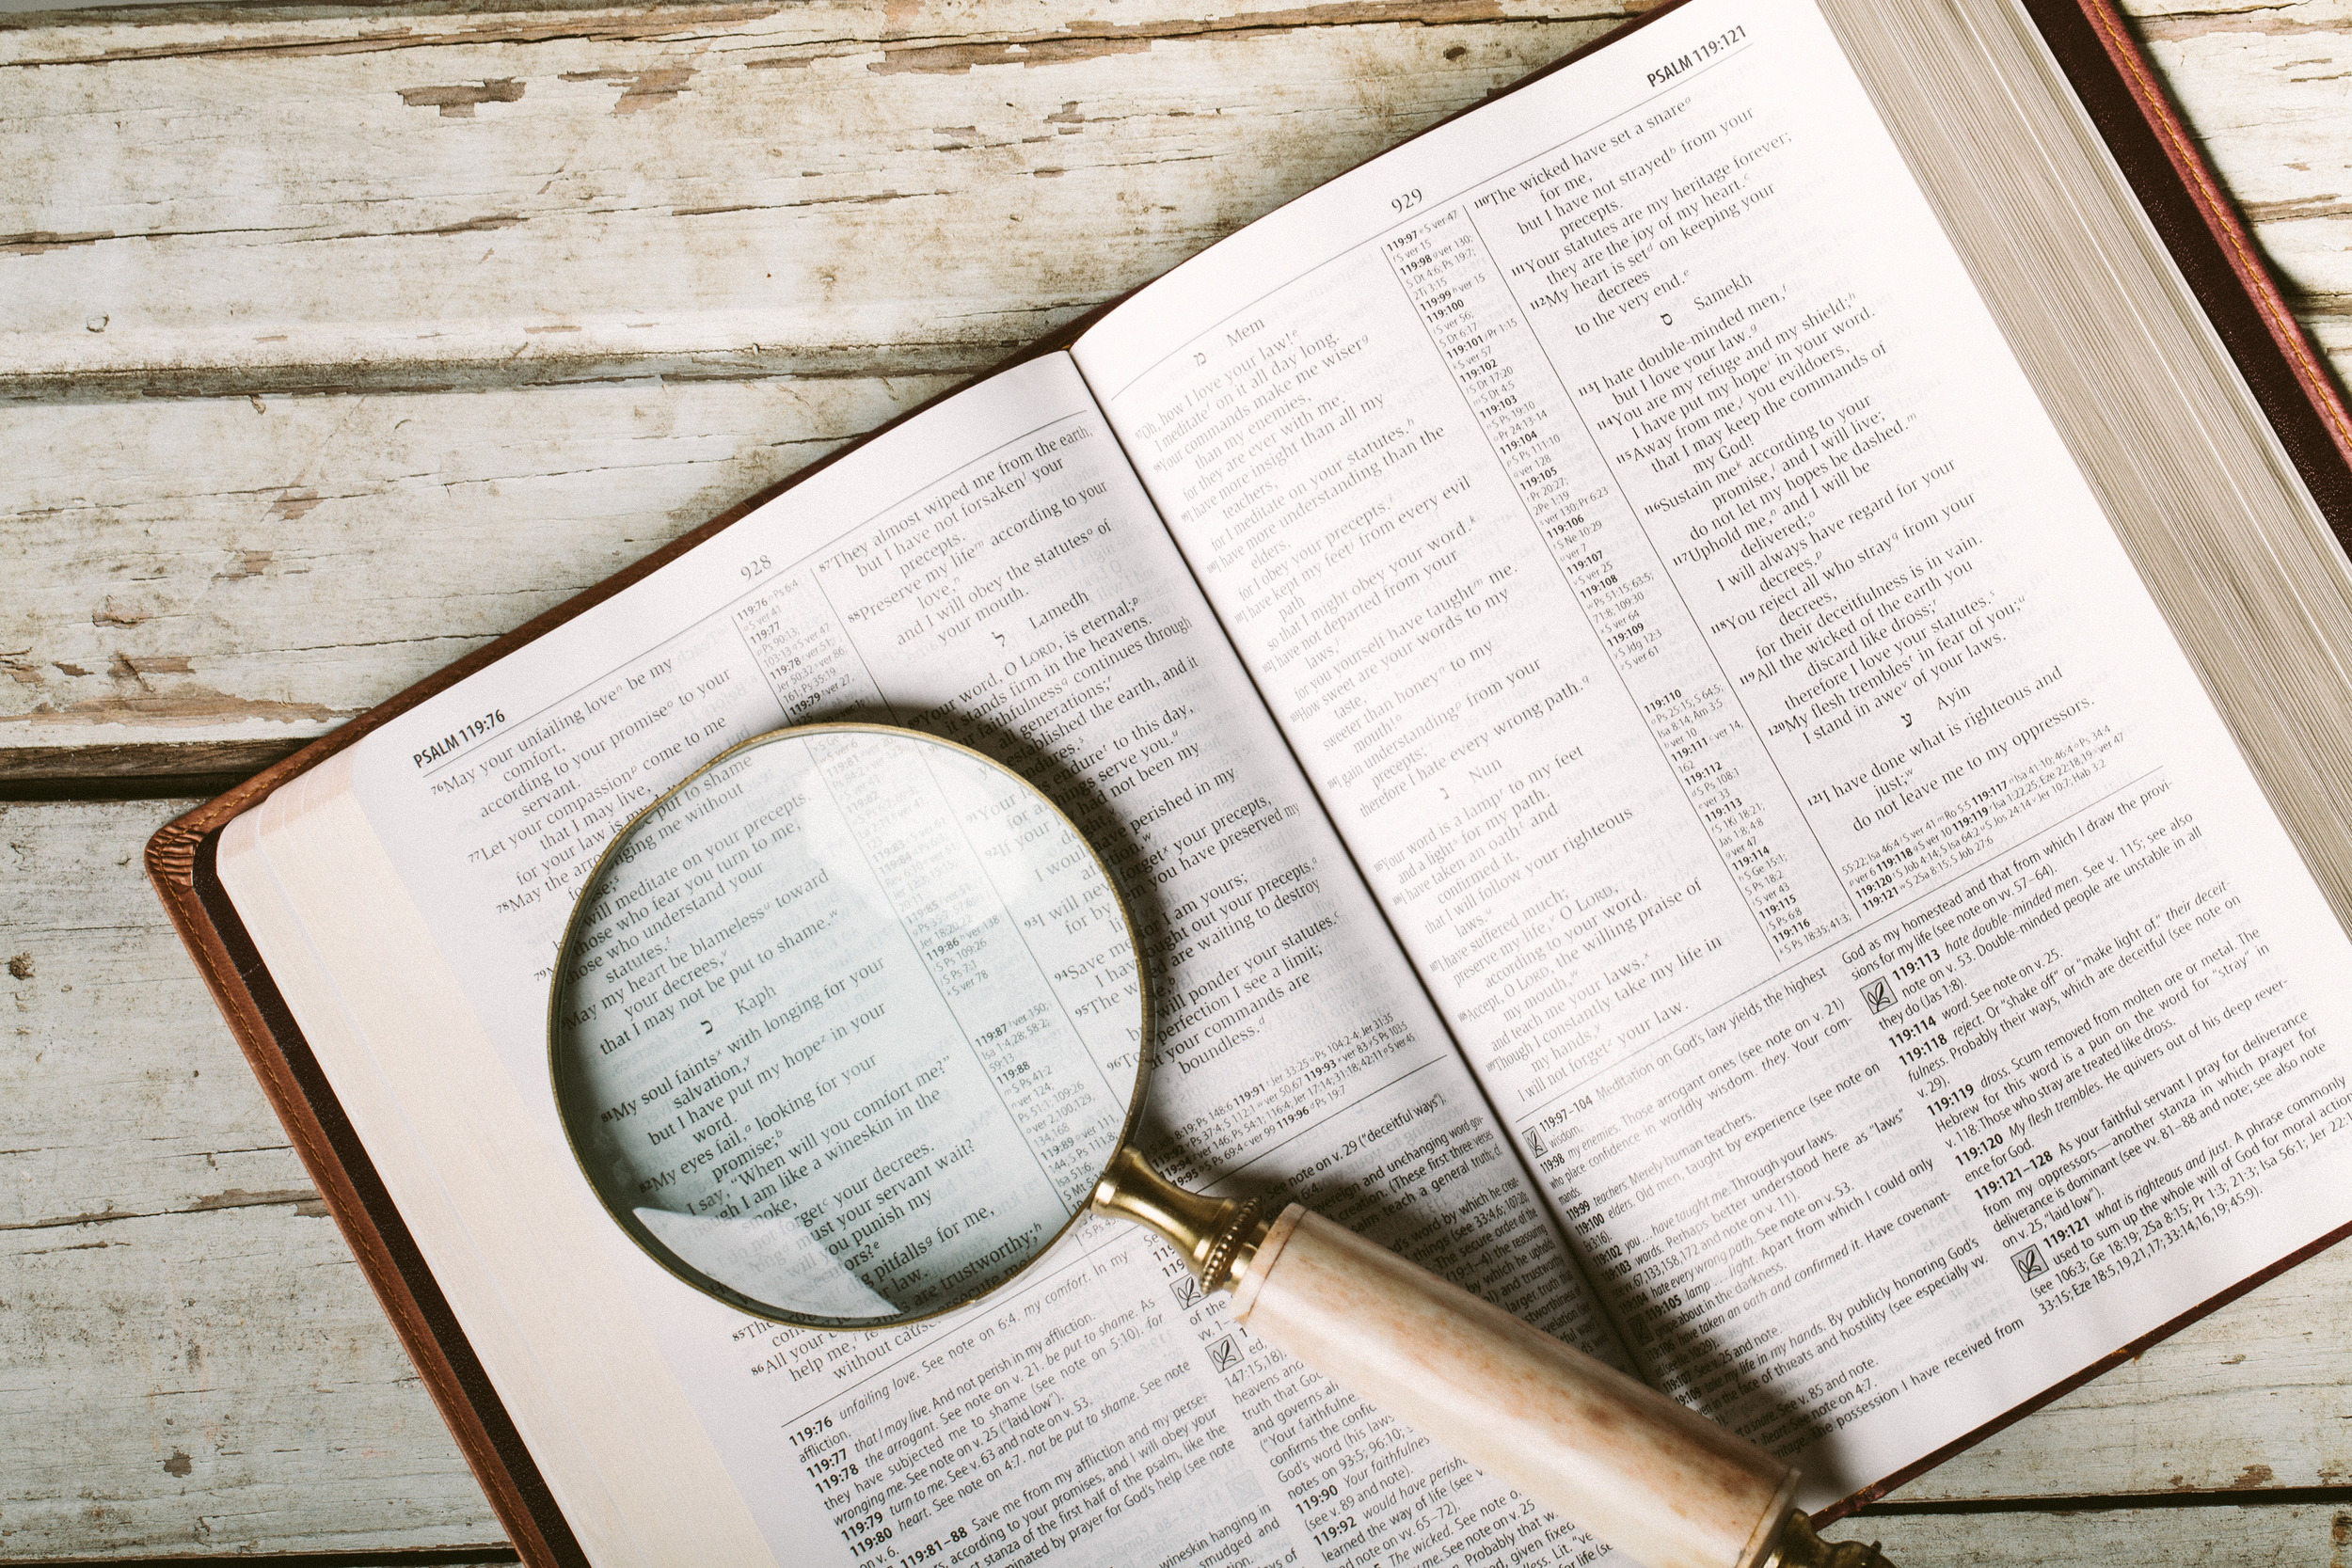 Keys to understanding life fulfills it's discipleship mission by seeking to magnify what the Bible talks about, and showing how discipleship is practical.